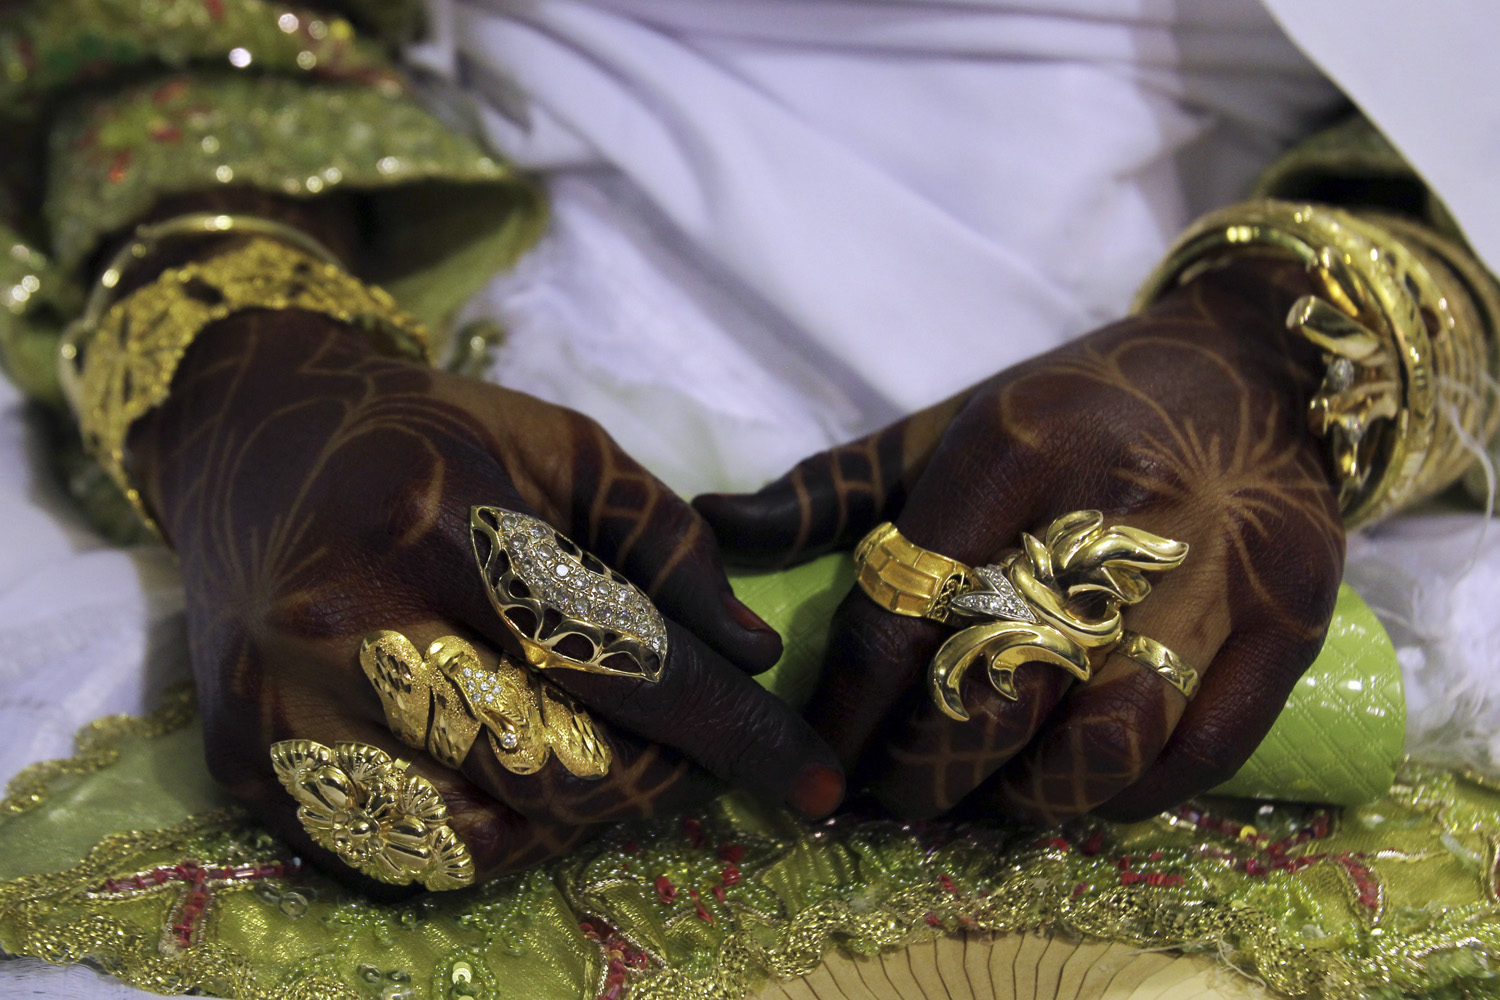 July 7, 2011. A Libyan bride is pictured during a group wedding party held for 25 couples in support of Muammar Gaddafi at his Bab al-Aziziya compound in Tripoli.